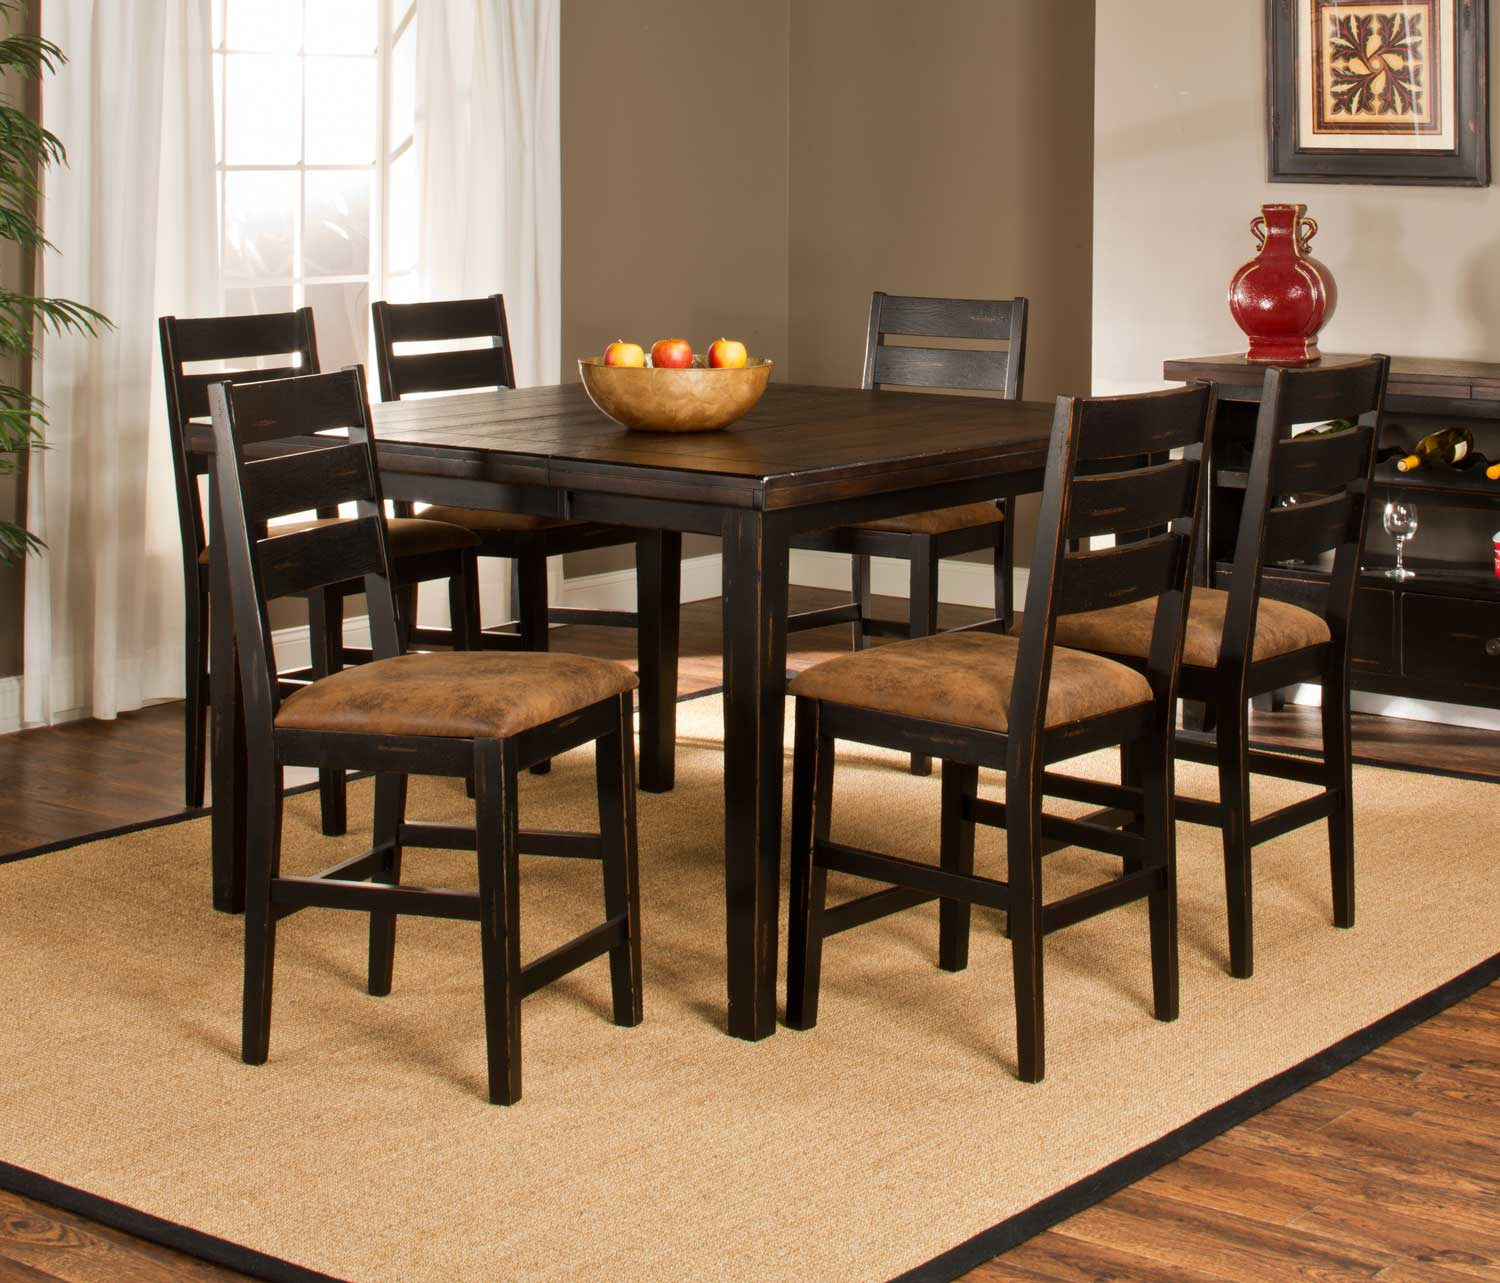 Hillsdale Killarney Counter Height Dining Set - Black/ Antique Brown